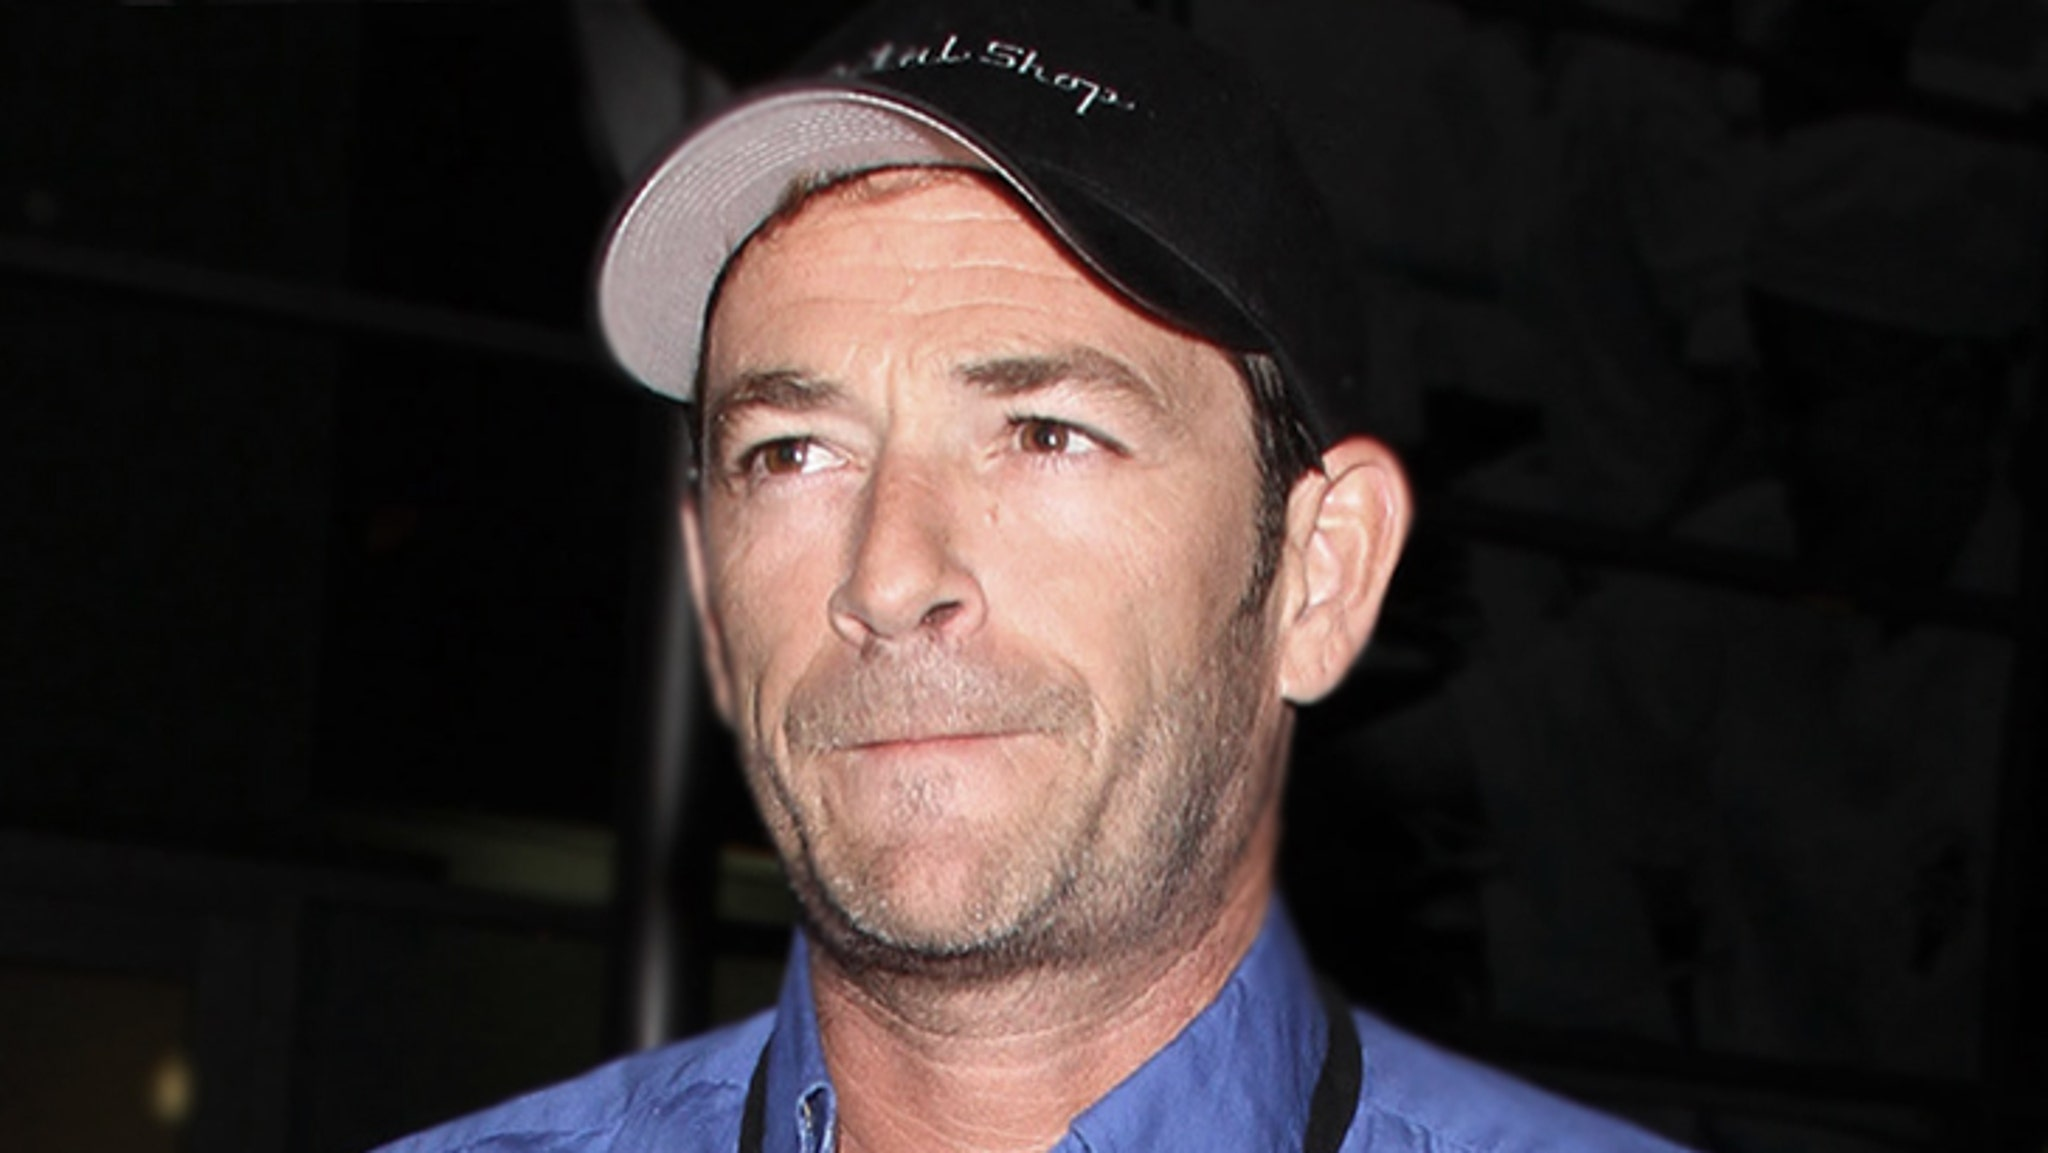 Luke Perry Cremated and Ashes Scattered on Tennessee Farm